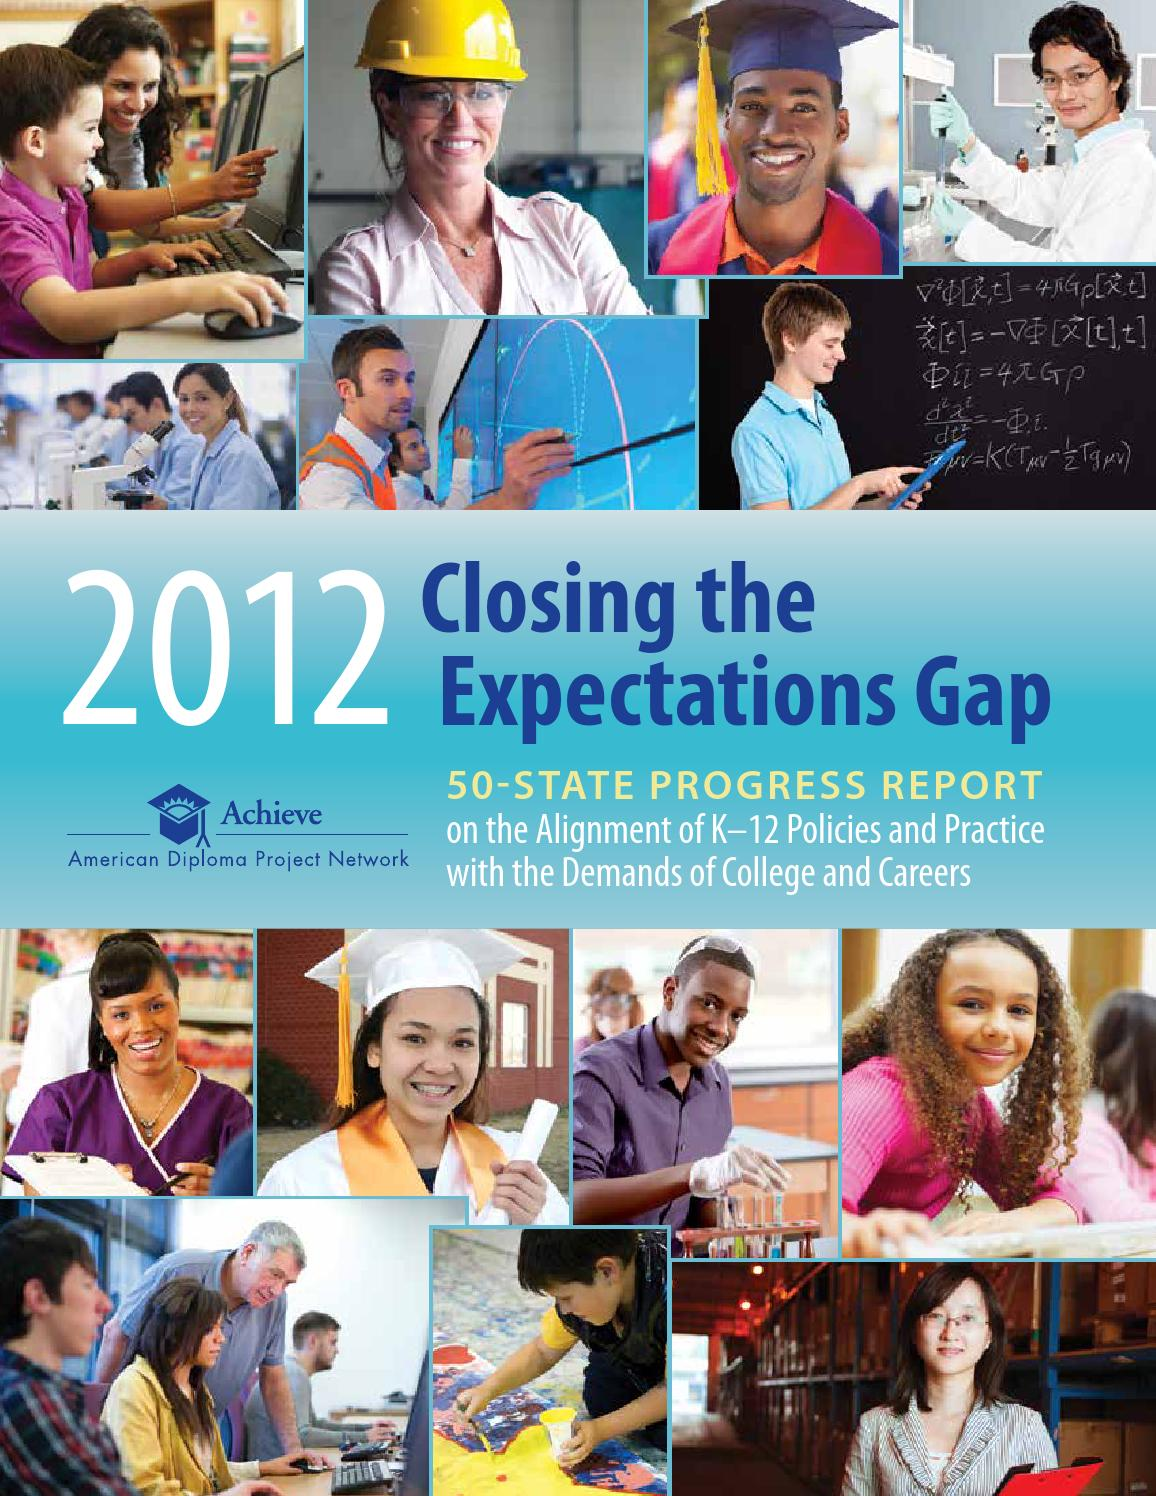 Closing the Expectations Gap 2012